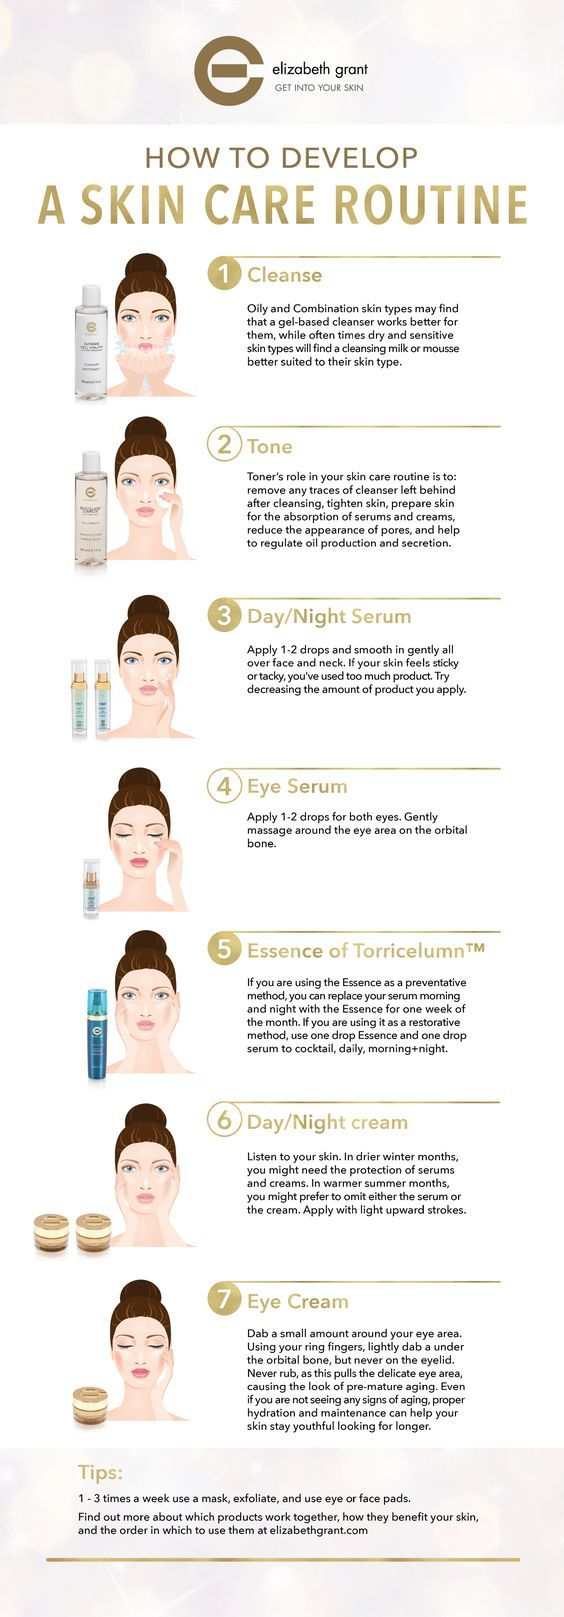 Do you know how to take care of your skin? Here is how you can develop a skin care routine to get the most out of your products.